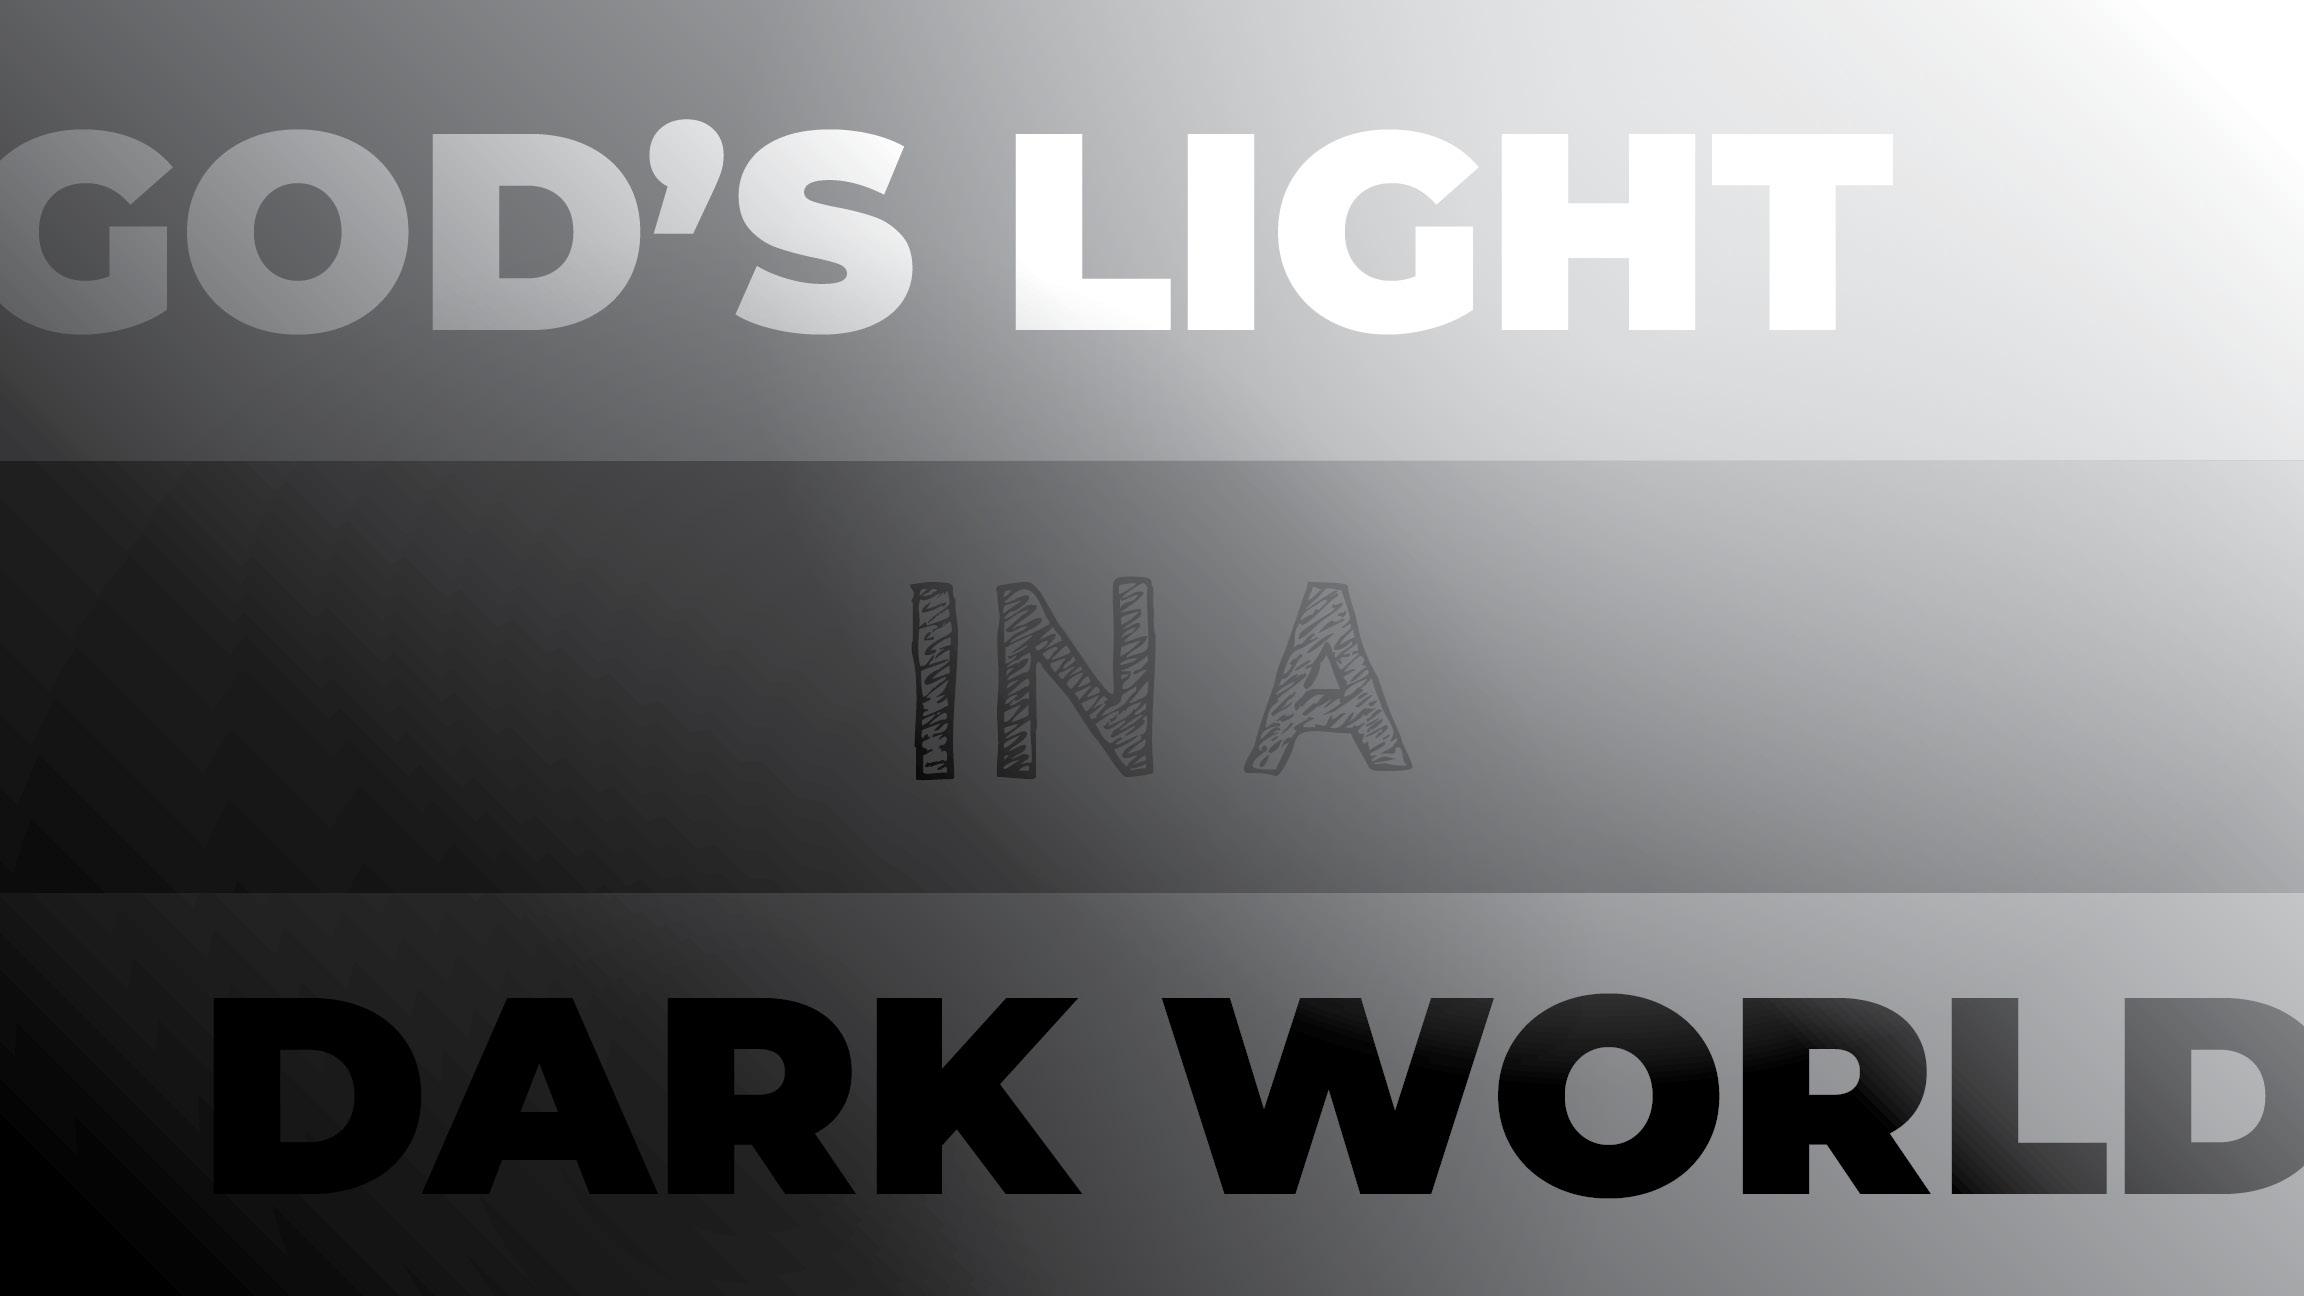 God's Light in a Dark World - v22.jpg (189 KB)